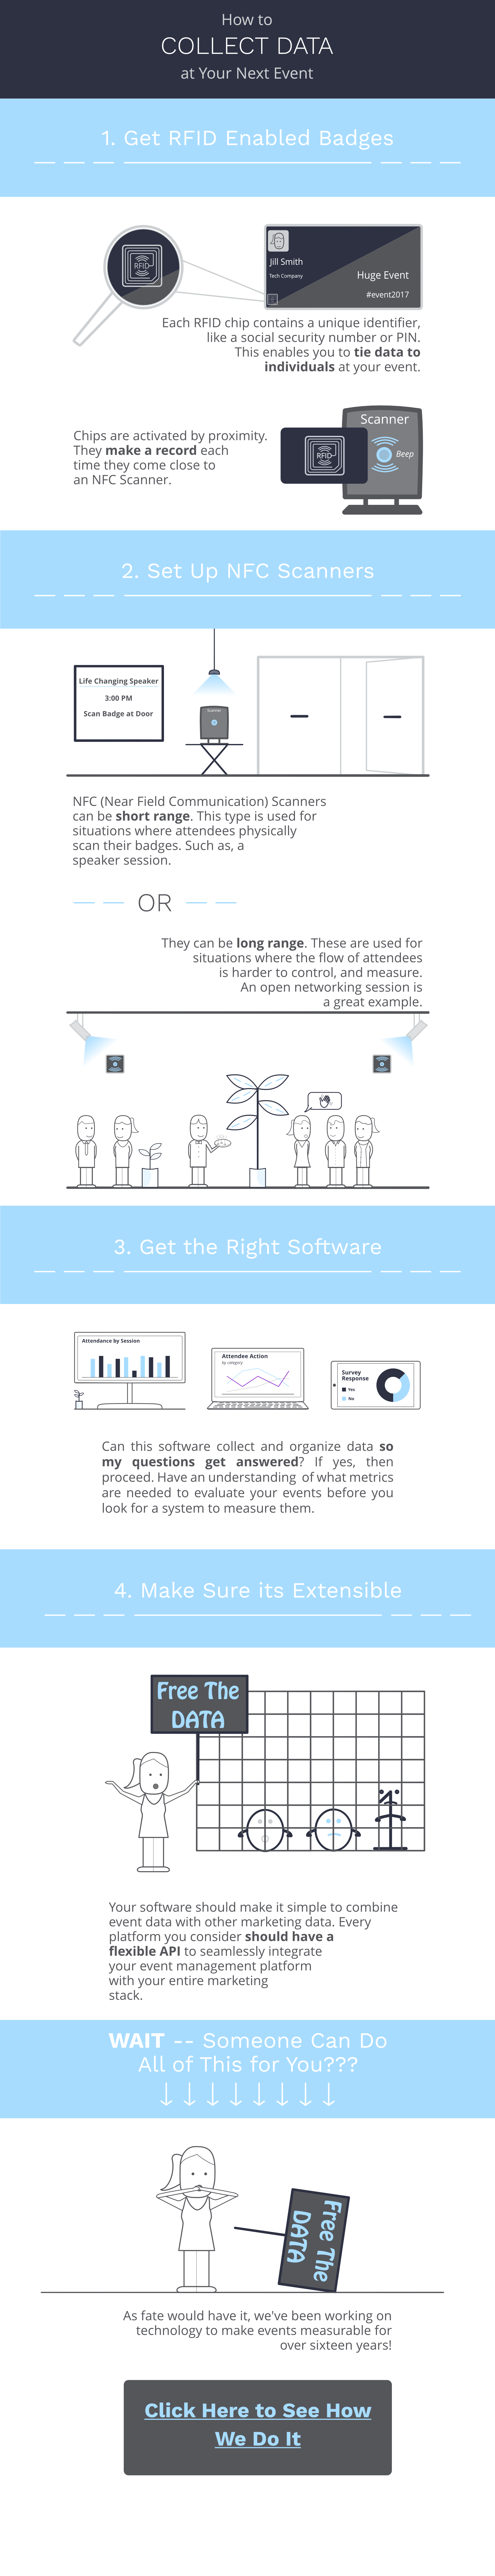 How to Collect Data at Your Next Event Part 1 [Infographic]